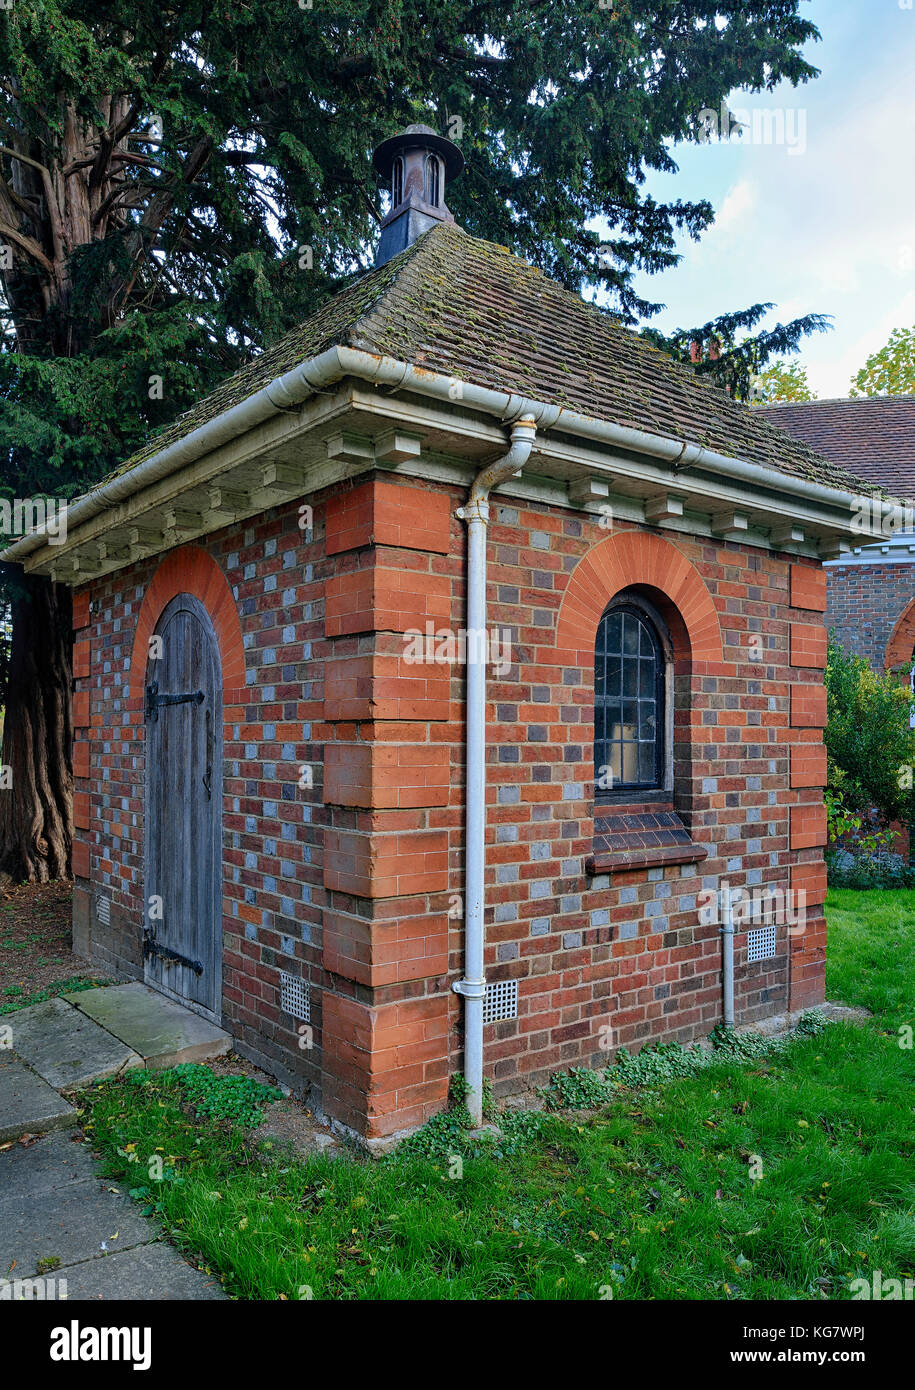 The Blowing House, St Helens Church, Abingdon  Built in 1927 to house the pump for the organ, in a style to match - Stock Image